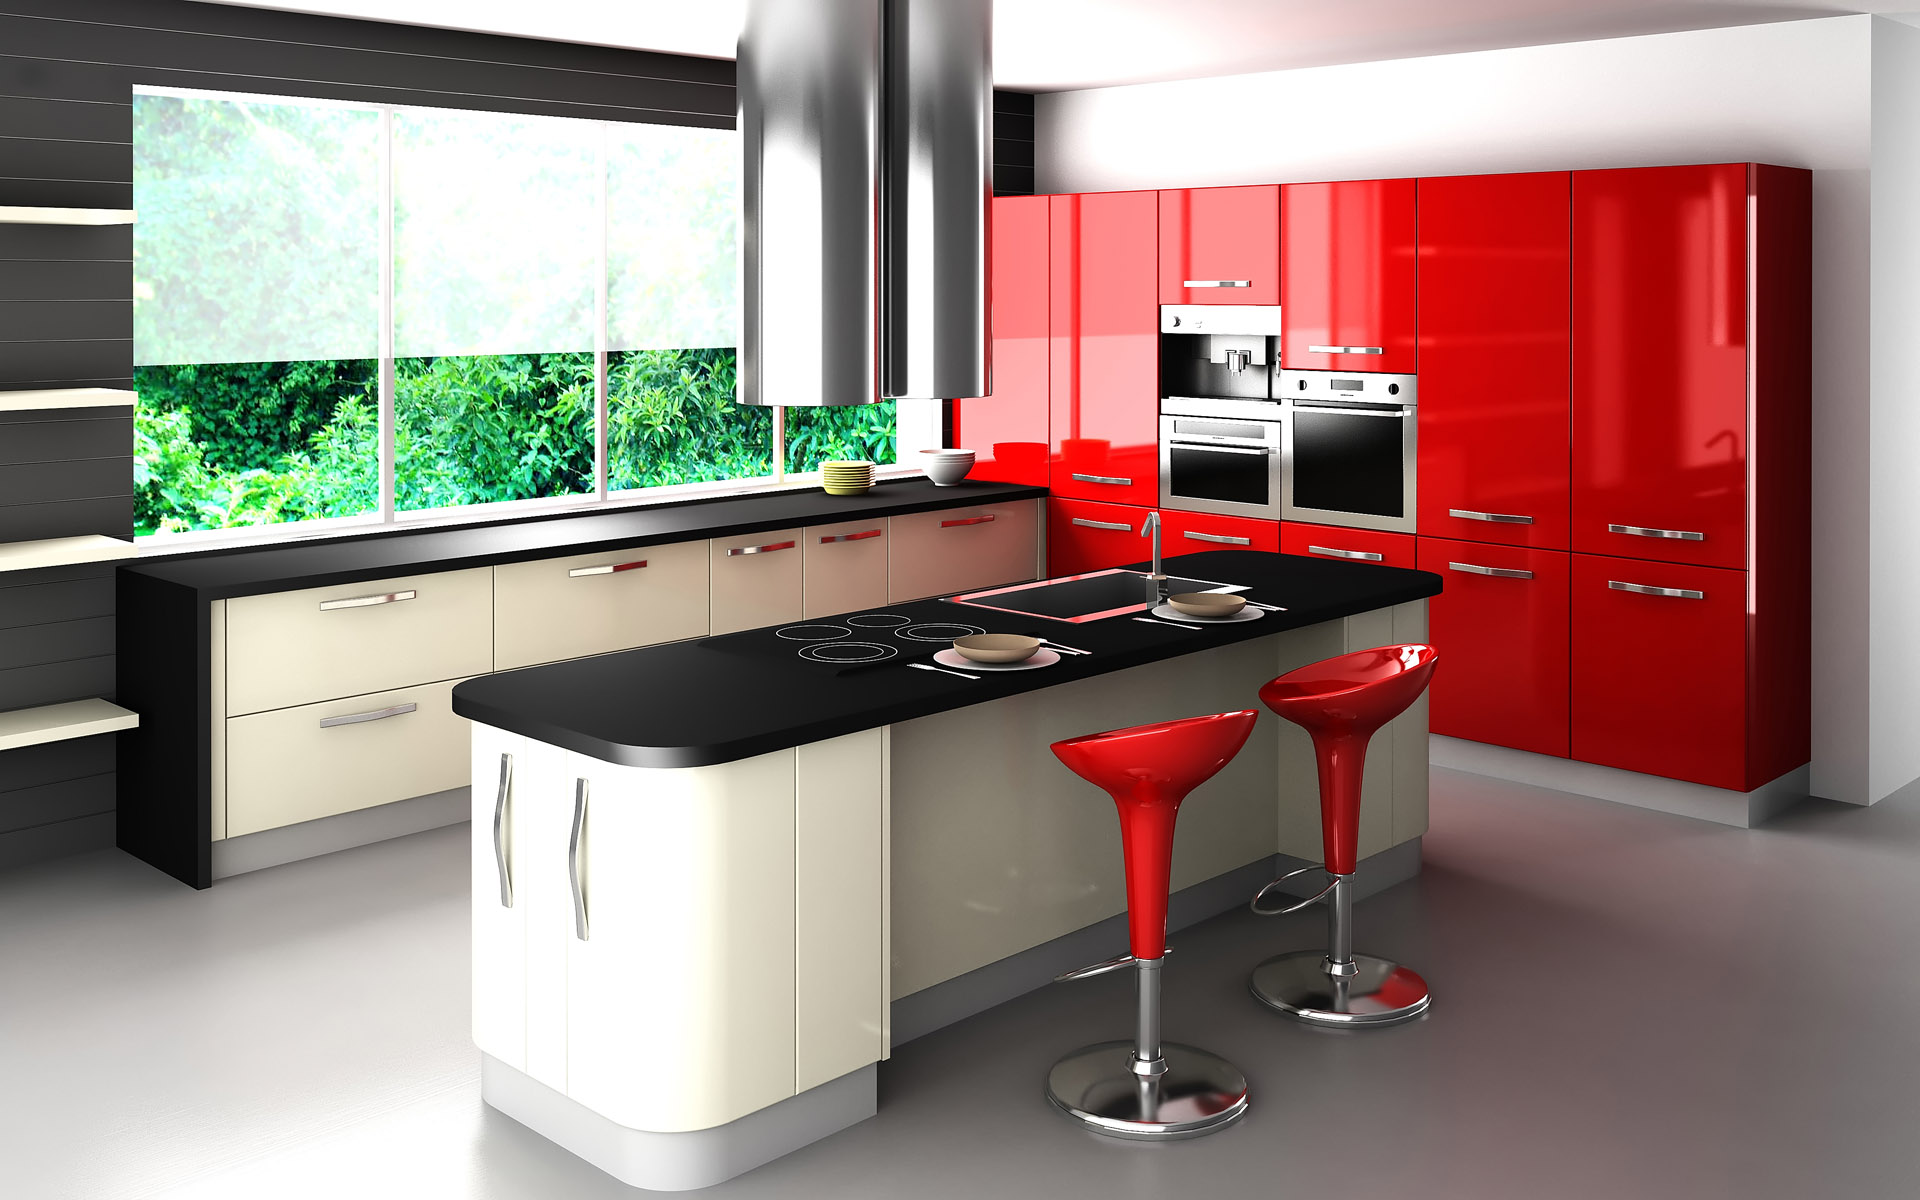 How to design the plumbing in the kitchen